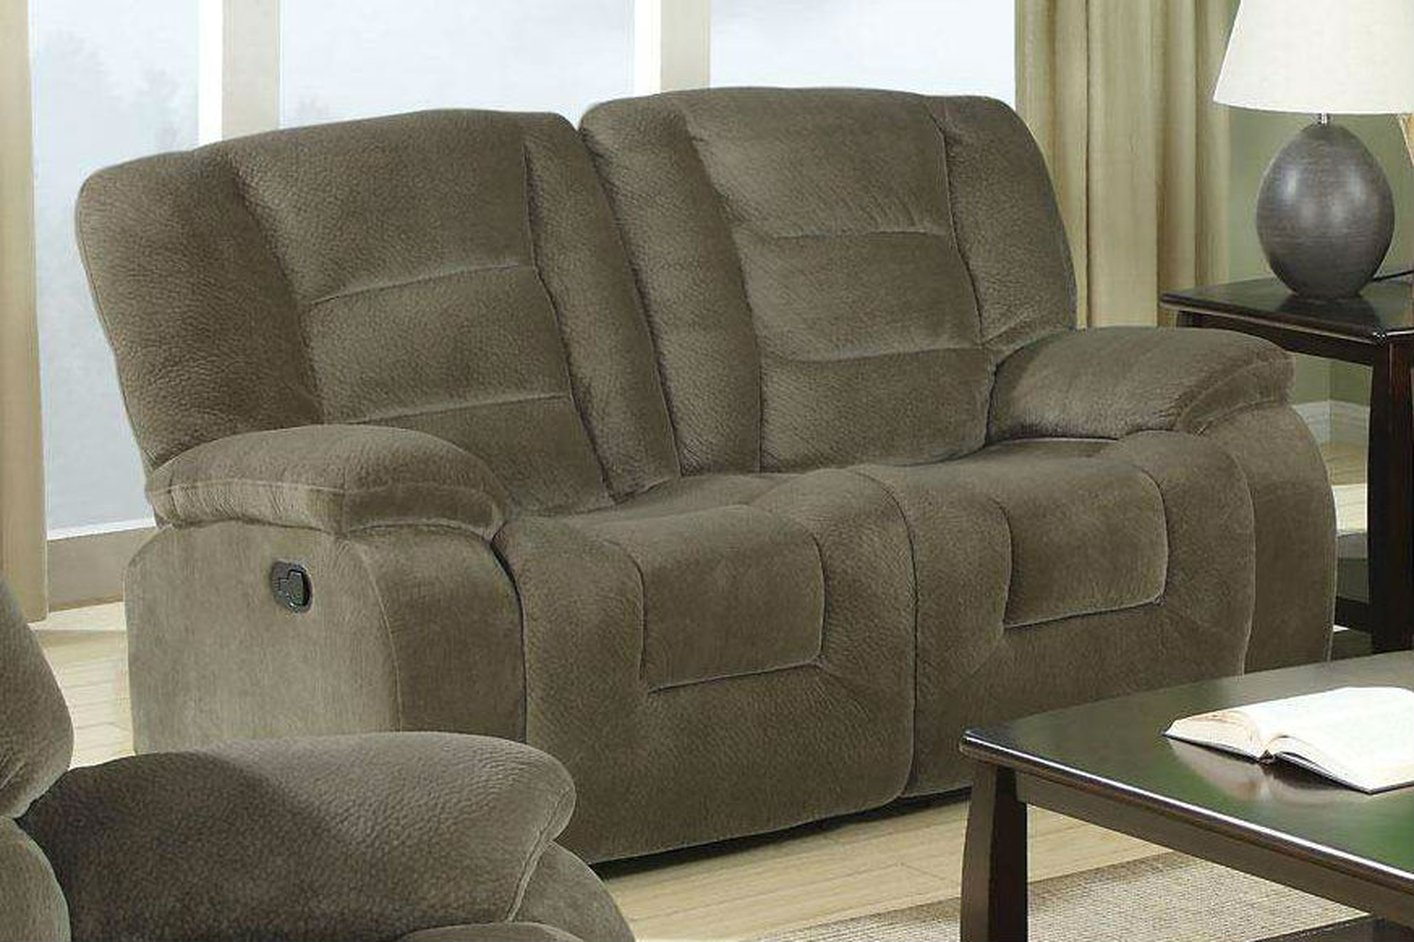 Coaster 600992 Brown Fabric Reclining Loveseat Steal A Sofa Furniture Outlet Los Angeles Ca